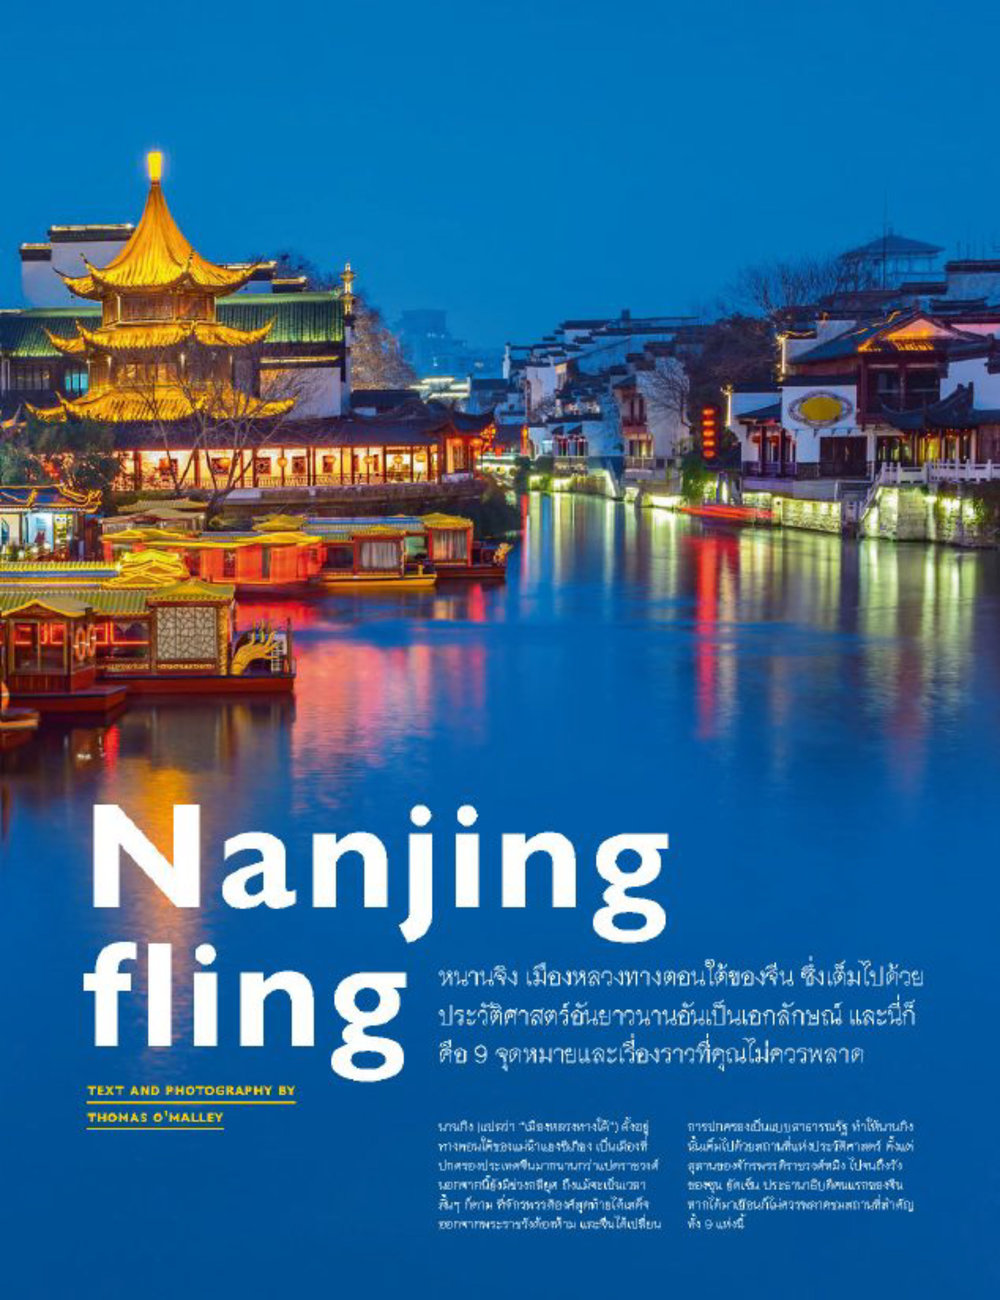 Scoot Nanjing article-2.jpg